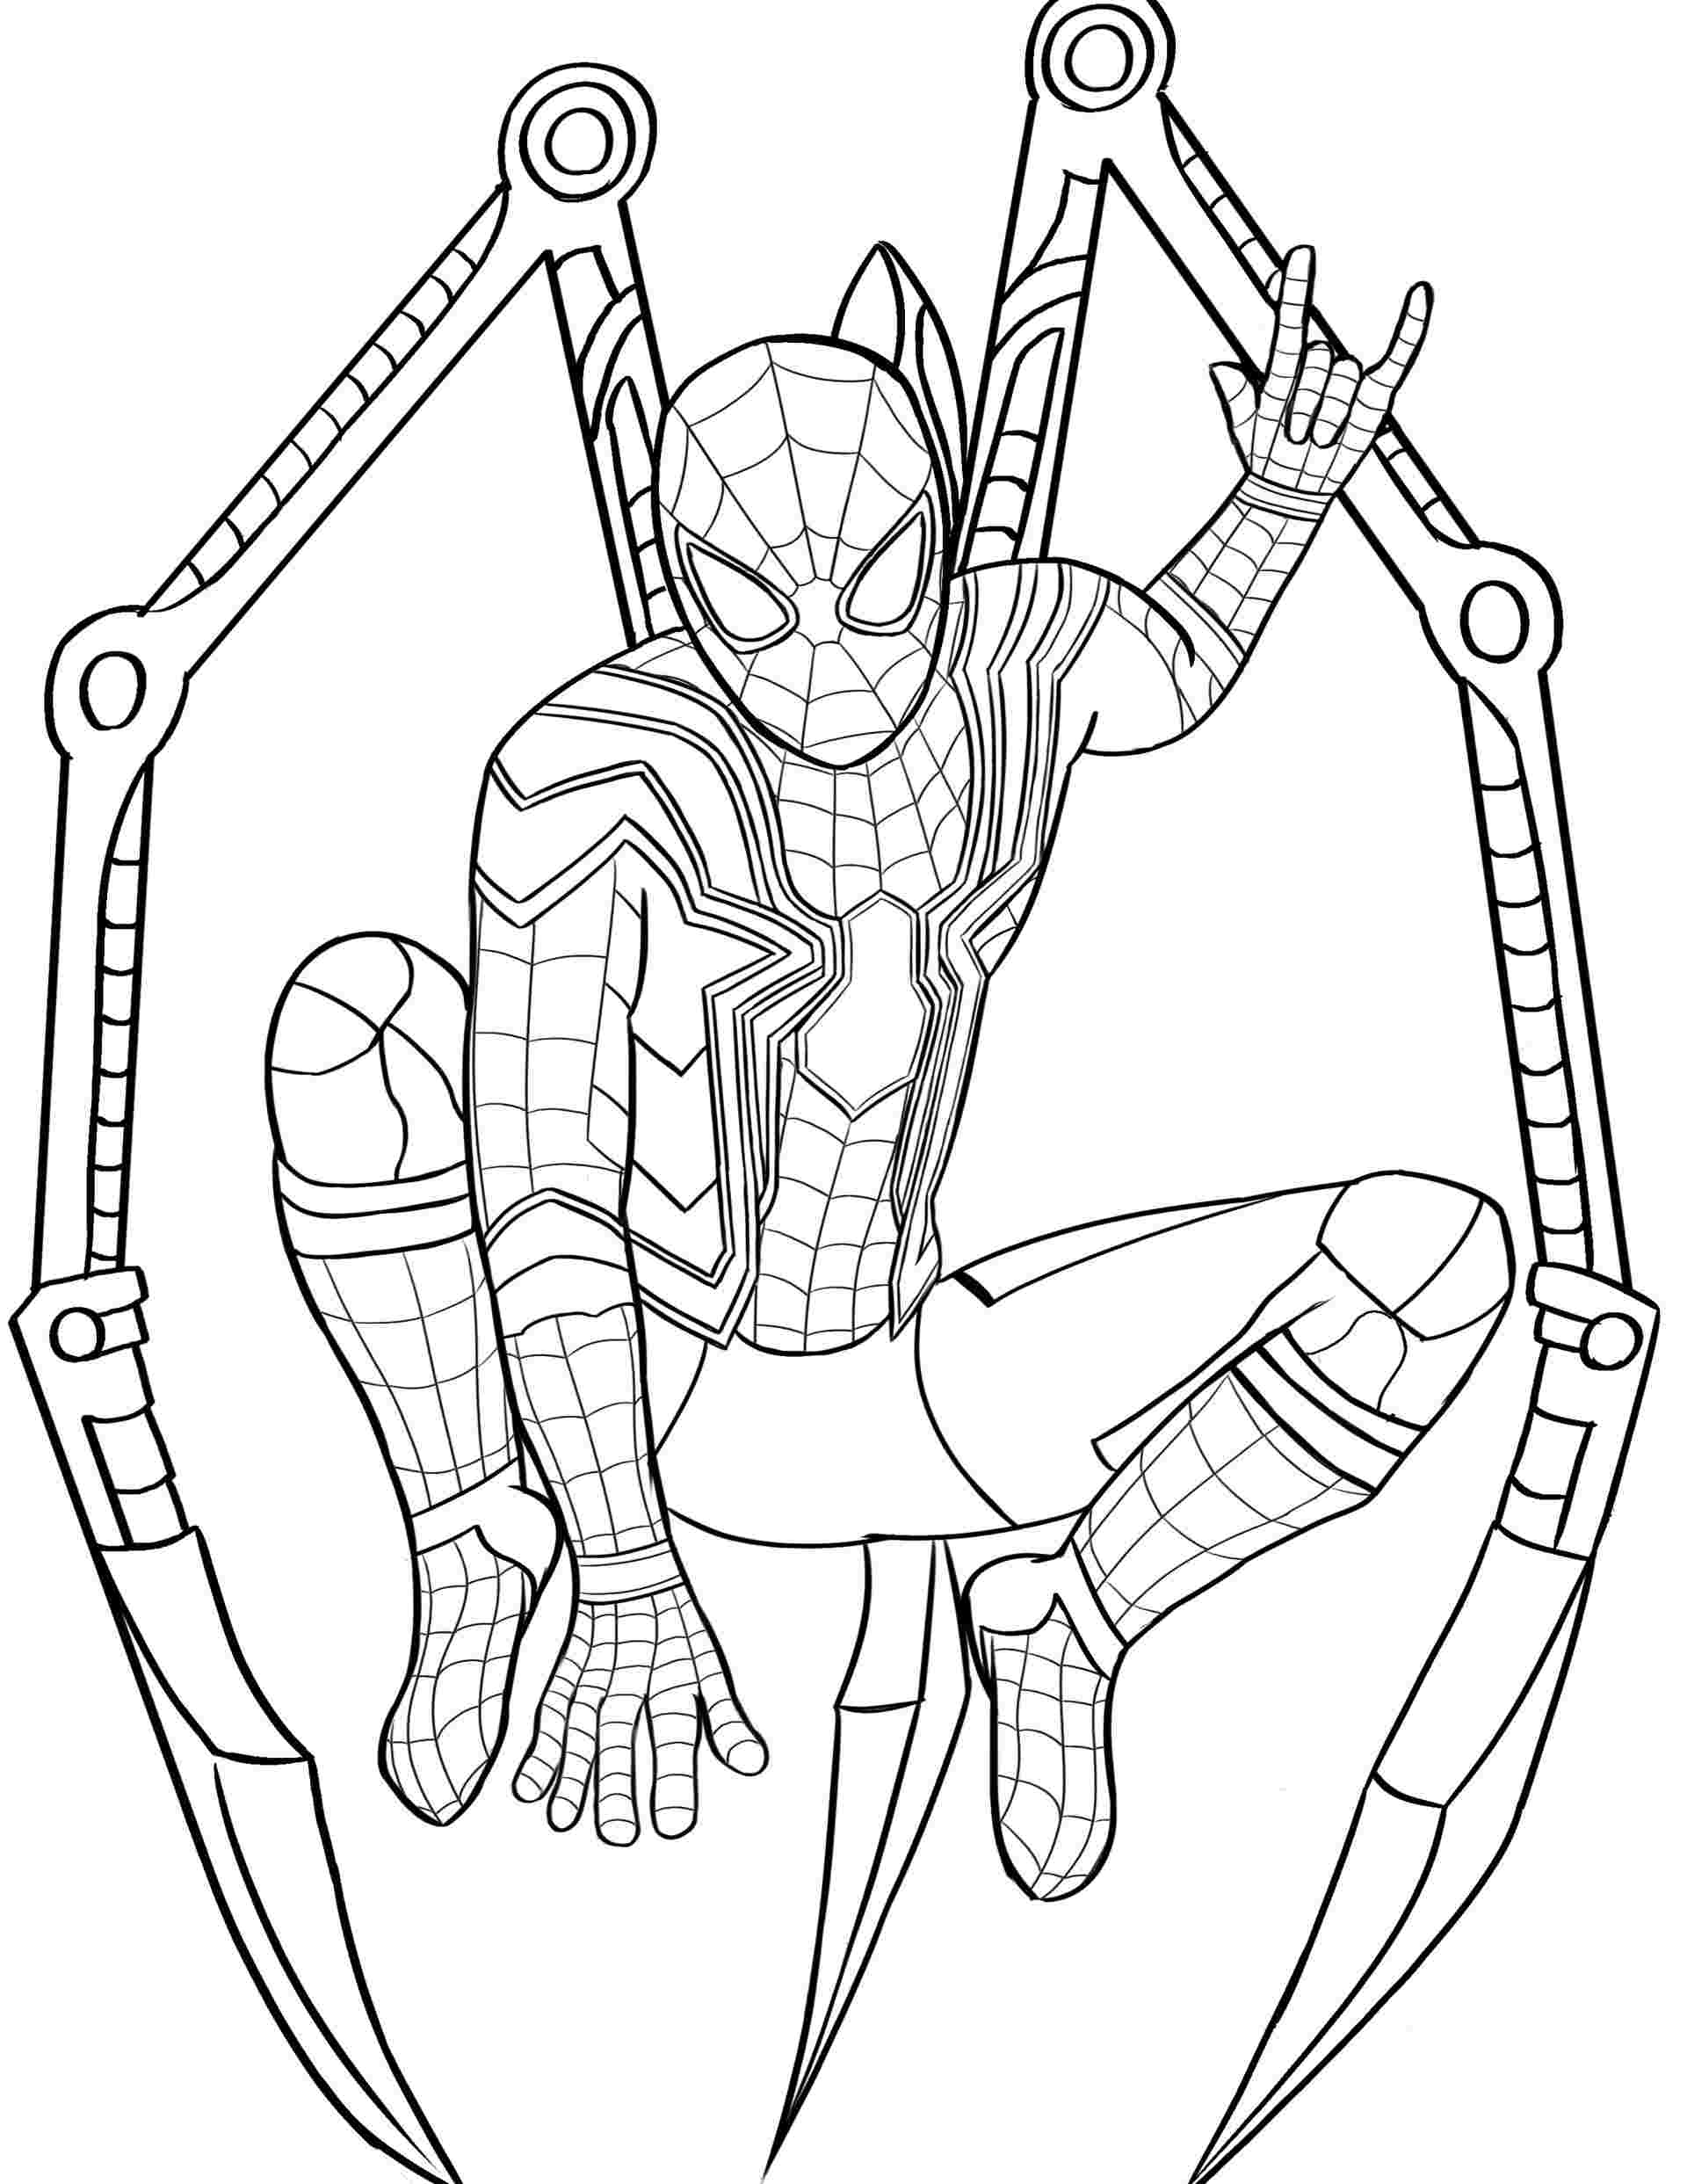 Coloring Pages | Iron Spider Coloringes Spiderman For Color